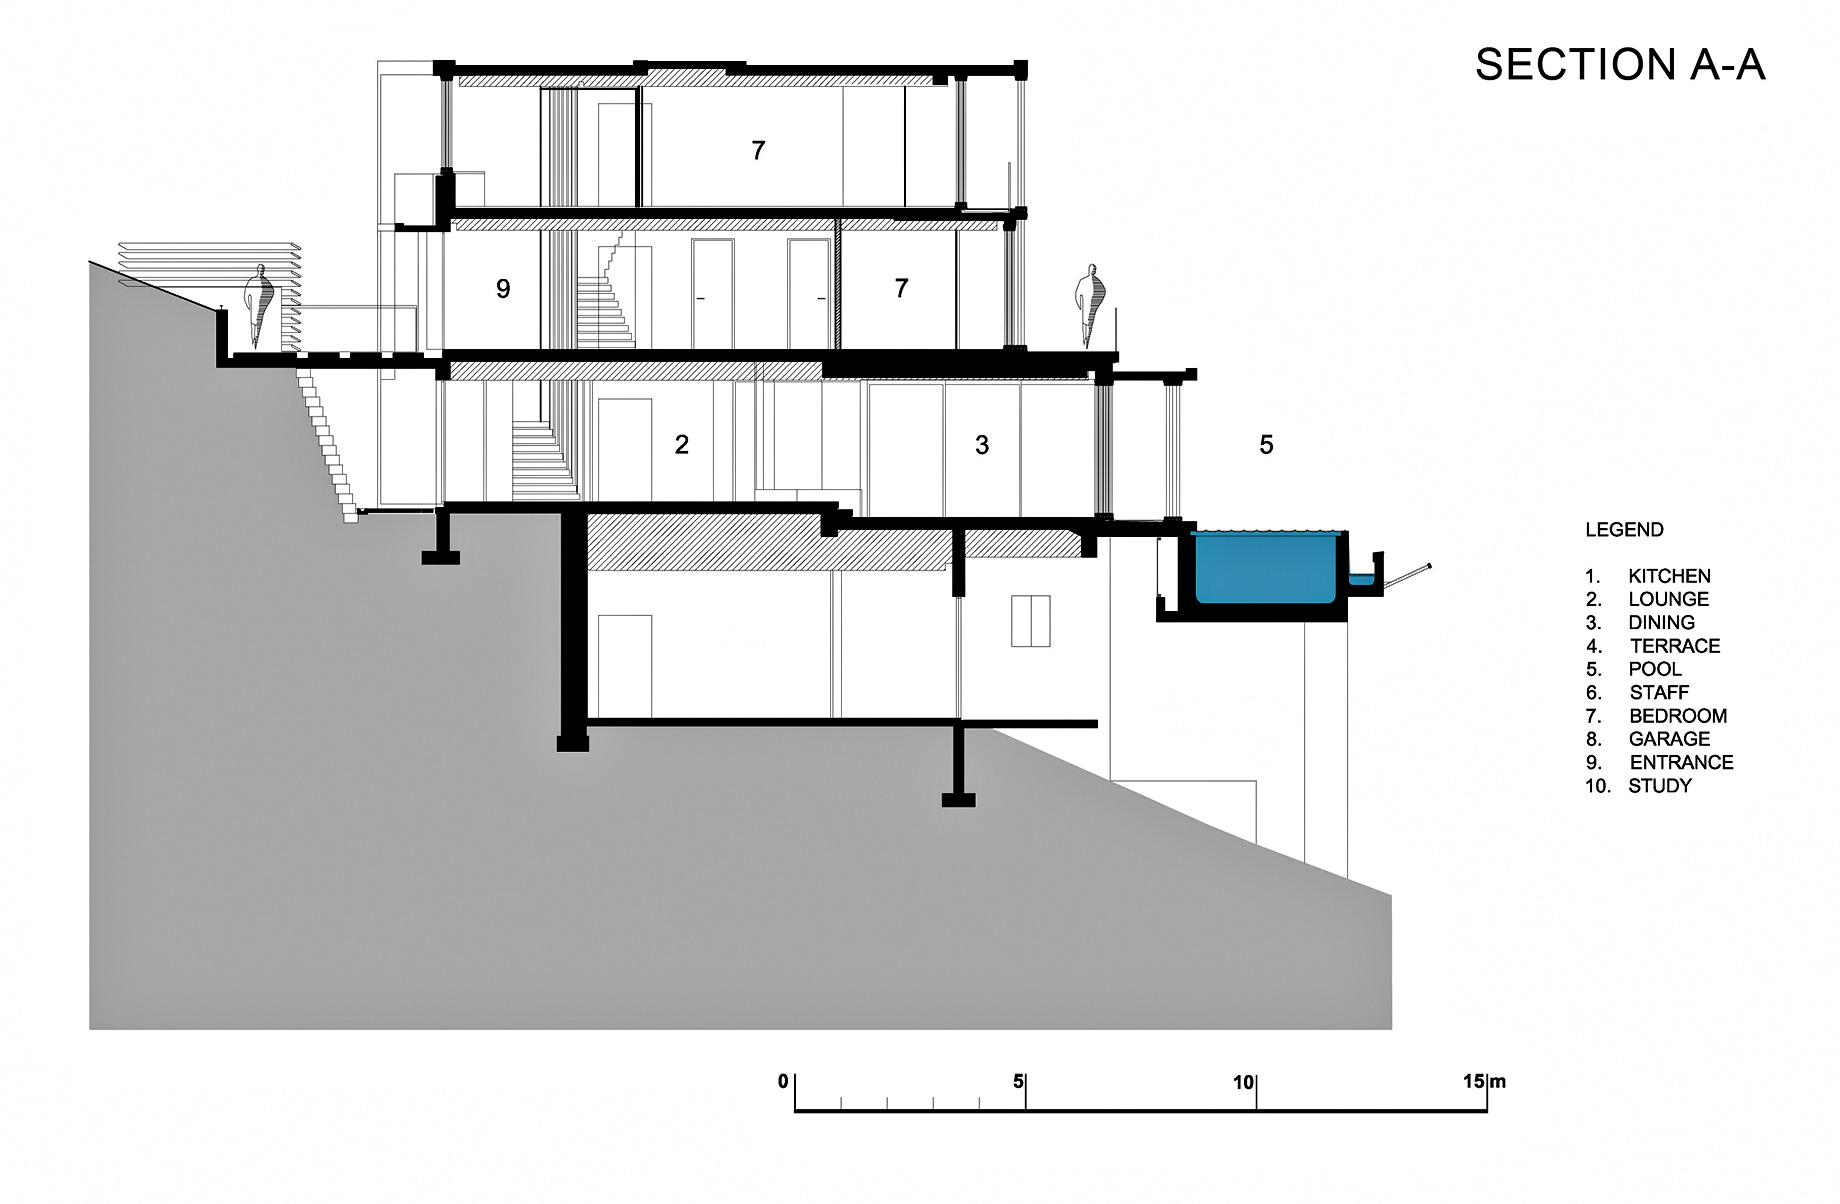 Sections - Level 3 - Head Road 1816 - Fresnaye, Cape Town, Western Cape, South Africa